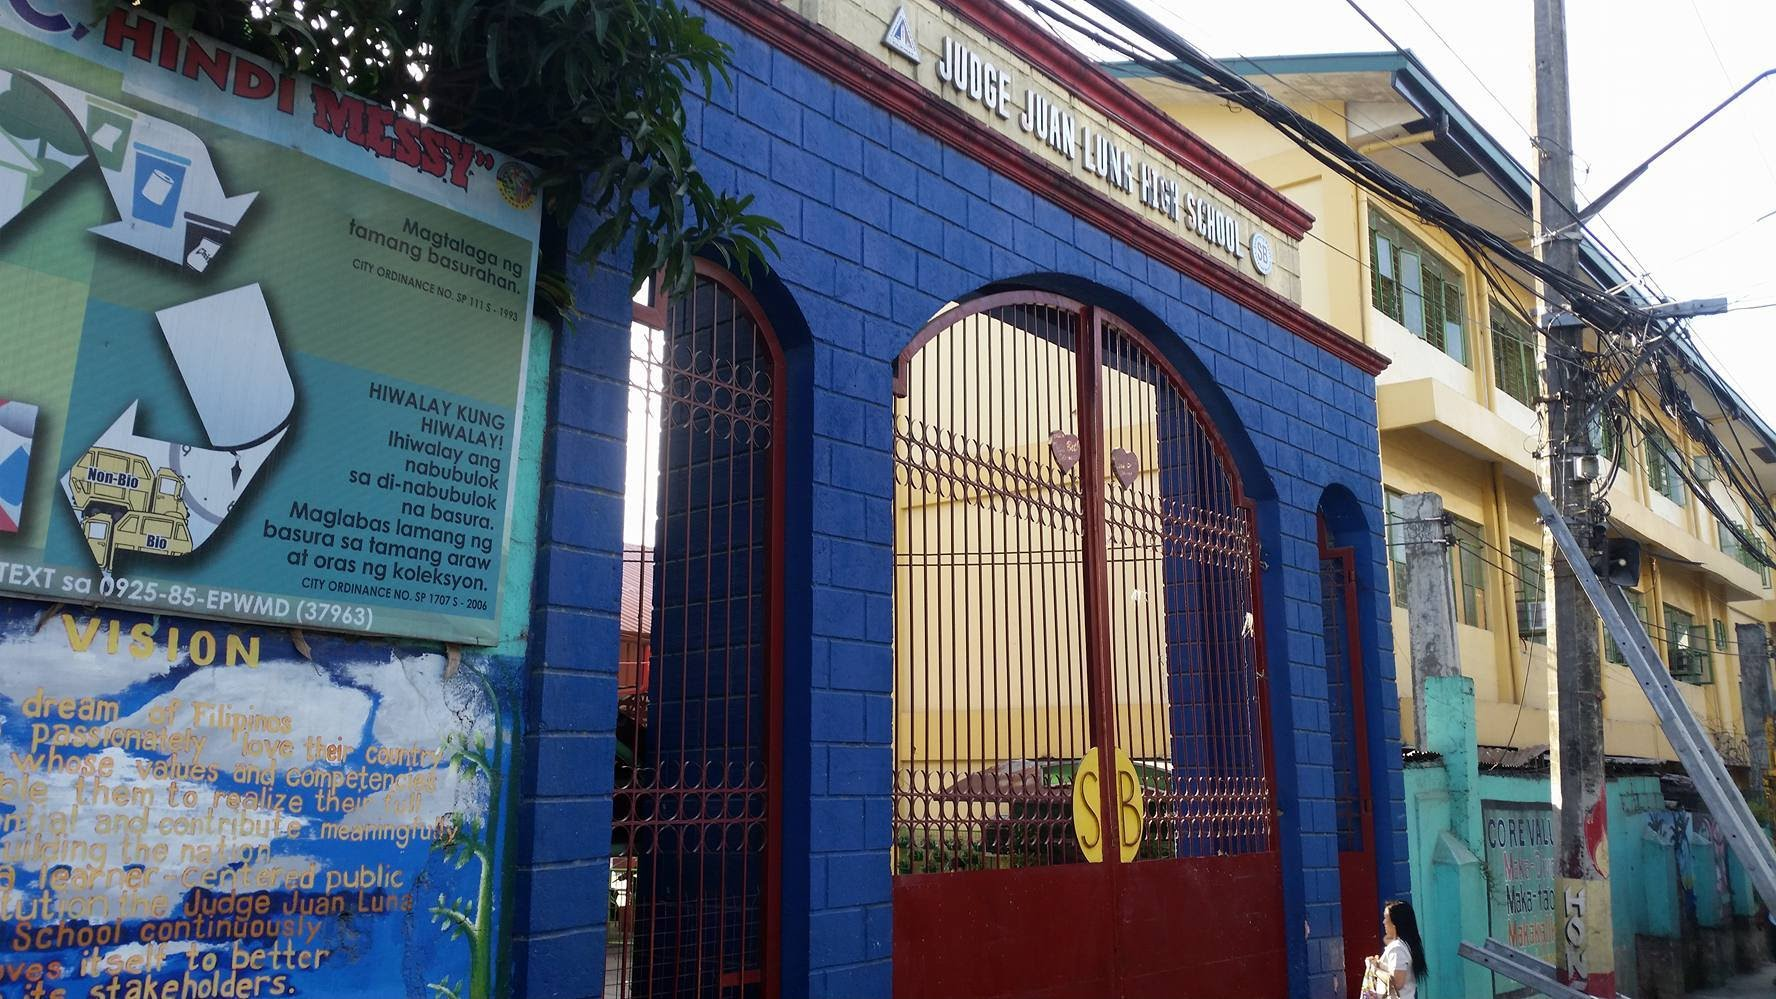 Name of Principal School Year Justo C. Ramos 1968-1972 Emilia Font 1972-1982 Aurora B. Taguba 1982-1983 Victorino V. Cano 1984-1988 Teresita N. Turia 1989-1991 Lilia A. Sahagun 1993-1994 Lumen G. Velasco 1993-1994 Eqxequil T. Calixtro 1994-1995 Paz M. Viloria 1995-1996 Sally M. Barcelona 1996-2001 Felicisima F. Tanedo 2001-2004 Jose B. Dividina 2004-2012 Lucia D. Herrera December 2012-July 17, 2015 Leila V. Ancheta July 20, 2015-present   The Judge Juan Luna High School Had experienced the most tragic event in its history when the fire broke out on February 16, 2005 at exactly 7:10 p.m. Burning the four buildings the Cano Building, the Font Building, the Ramos Building and the Taguba Building, sparing the Calalay Building, ang the Mathay Building. The cause of the fire was accident in nature. Two thousand eight hundred eighty-eight (2,888) students were affected by the tragedy. Classes were suspended by two days. (February 17 and 18) and resumed on February 21, 2005. The first year students were housed at Esteban Abada Elementary School while the second year students were accommodated at the Barangay Bungad Elementary Covered Court. The third year held their classes at the Mathay Building in the morning while the Fourth year in the afternoon. The Calalay Building was not used, for the safety of the students and the school personnel, while clearing on the fire remnants were going on.  Mr. Jose Dividina was transferred to JJLHS on june 5, 2006 as Principal III. As a visionary administrator, he was instrument in the realization for the completion of another two buildings-SB and DepEd. Through his leadership, donations from benefactors such as NGOs, LGUs, and other civic-minded people poured in. The shortage for computers, books and other teaching materials had been solved; resulting to a much-improved school performance in the succeeding years.  Mrs. Lucia D. Herrera was transferred to Judge Juan Luna High School on December 10,2012 due to forced retirement of Dr. Jose